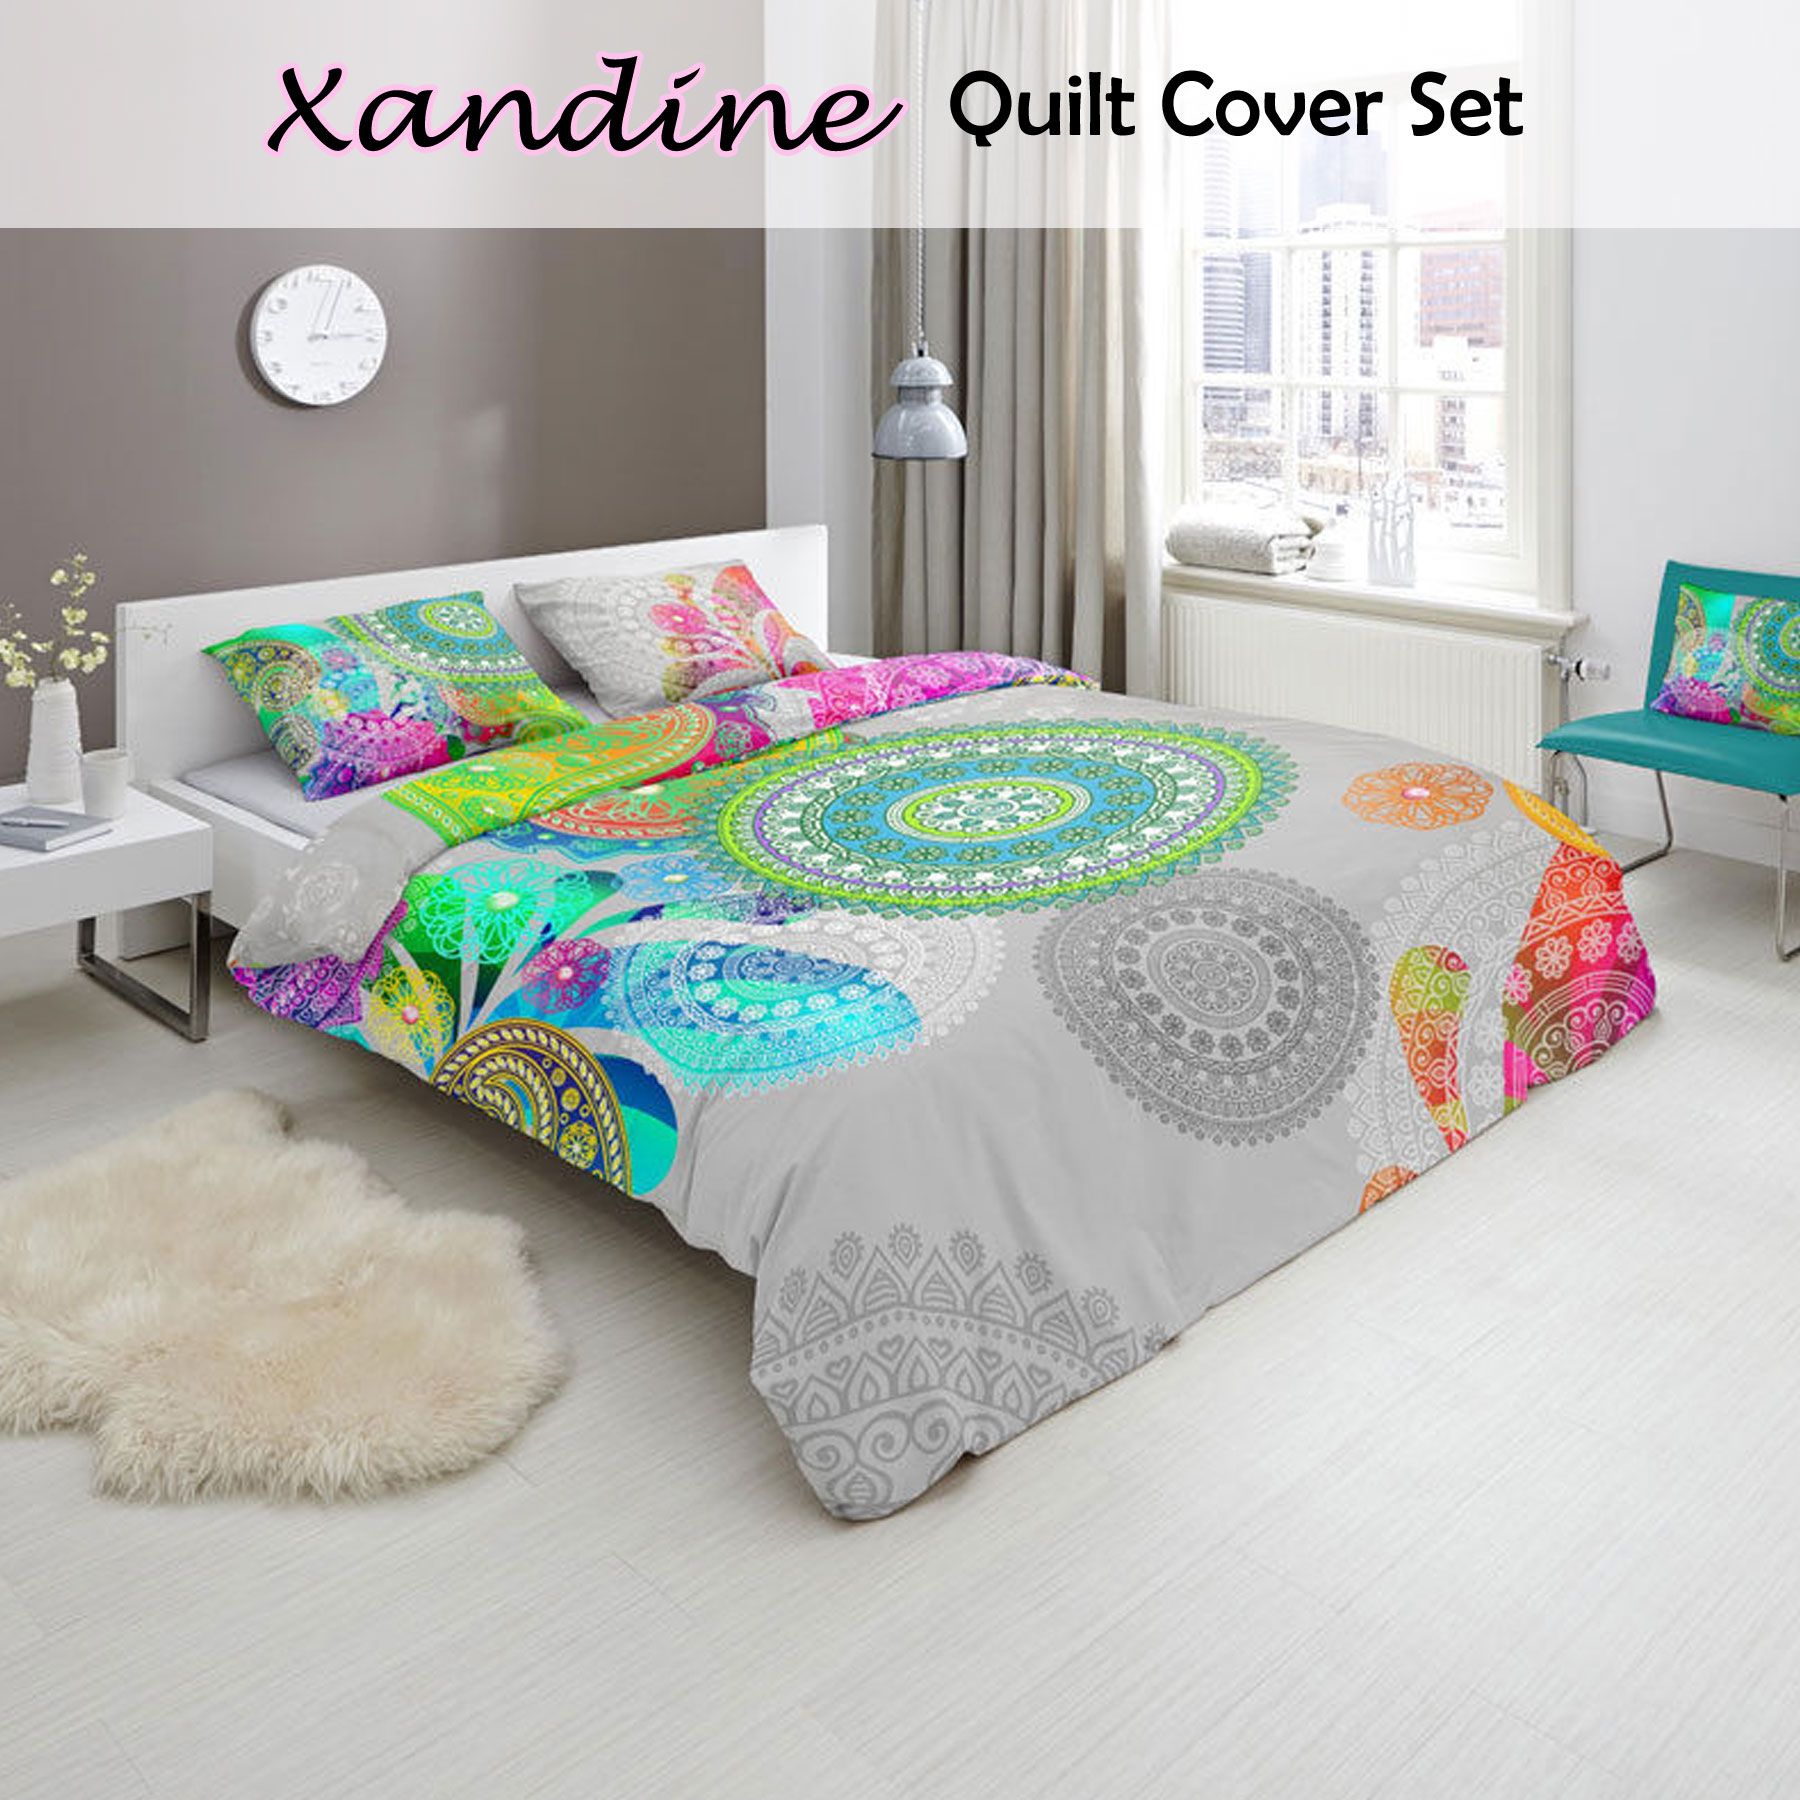 duvet madhu co home international quilt cover covers vrtogo com kitchen bohemian amazon set